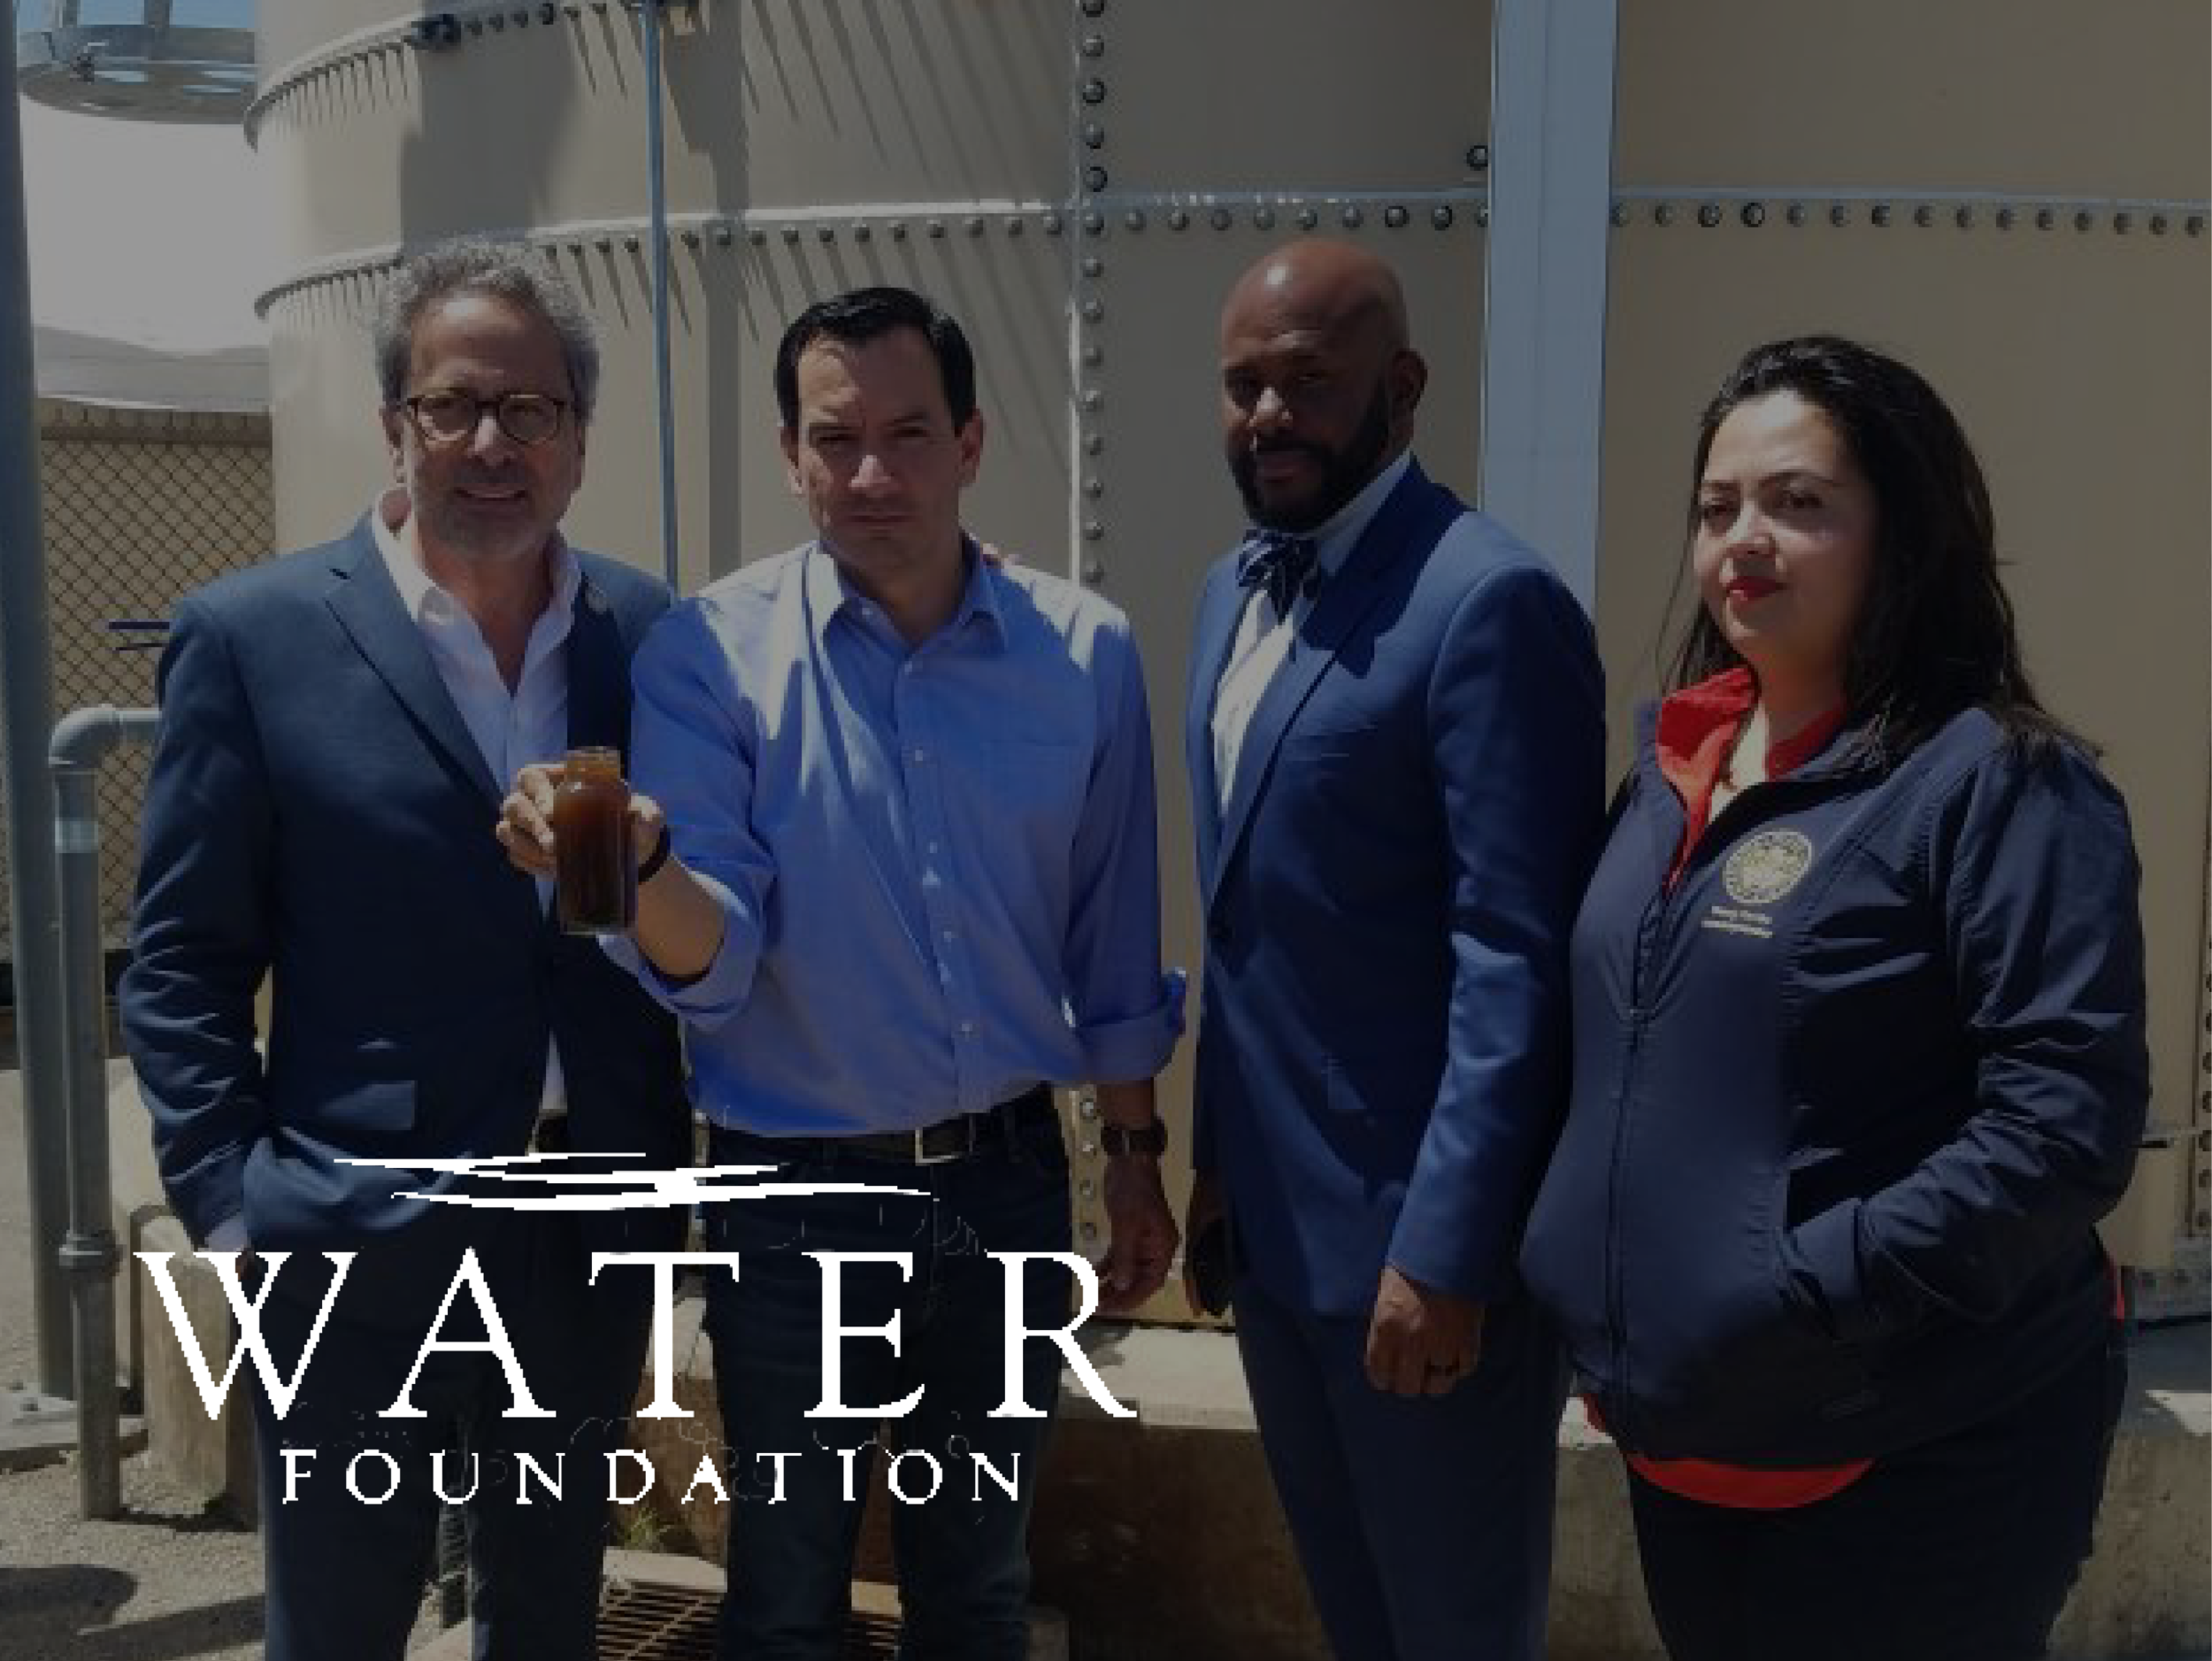 FOUNDATION - Brought together state legislators and local advocates to visit contaminated water treatment facilities across southeast L.A. — emphasizing the need for access to clean, safe drinking water in the region